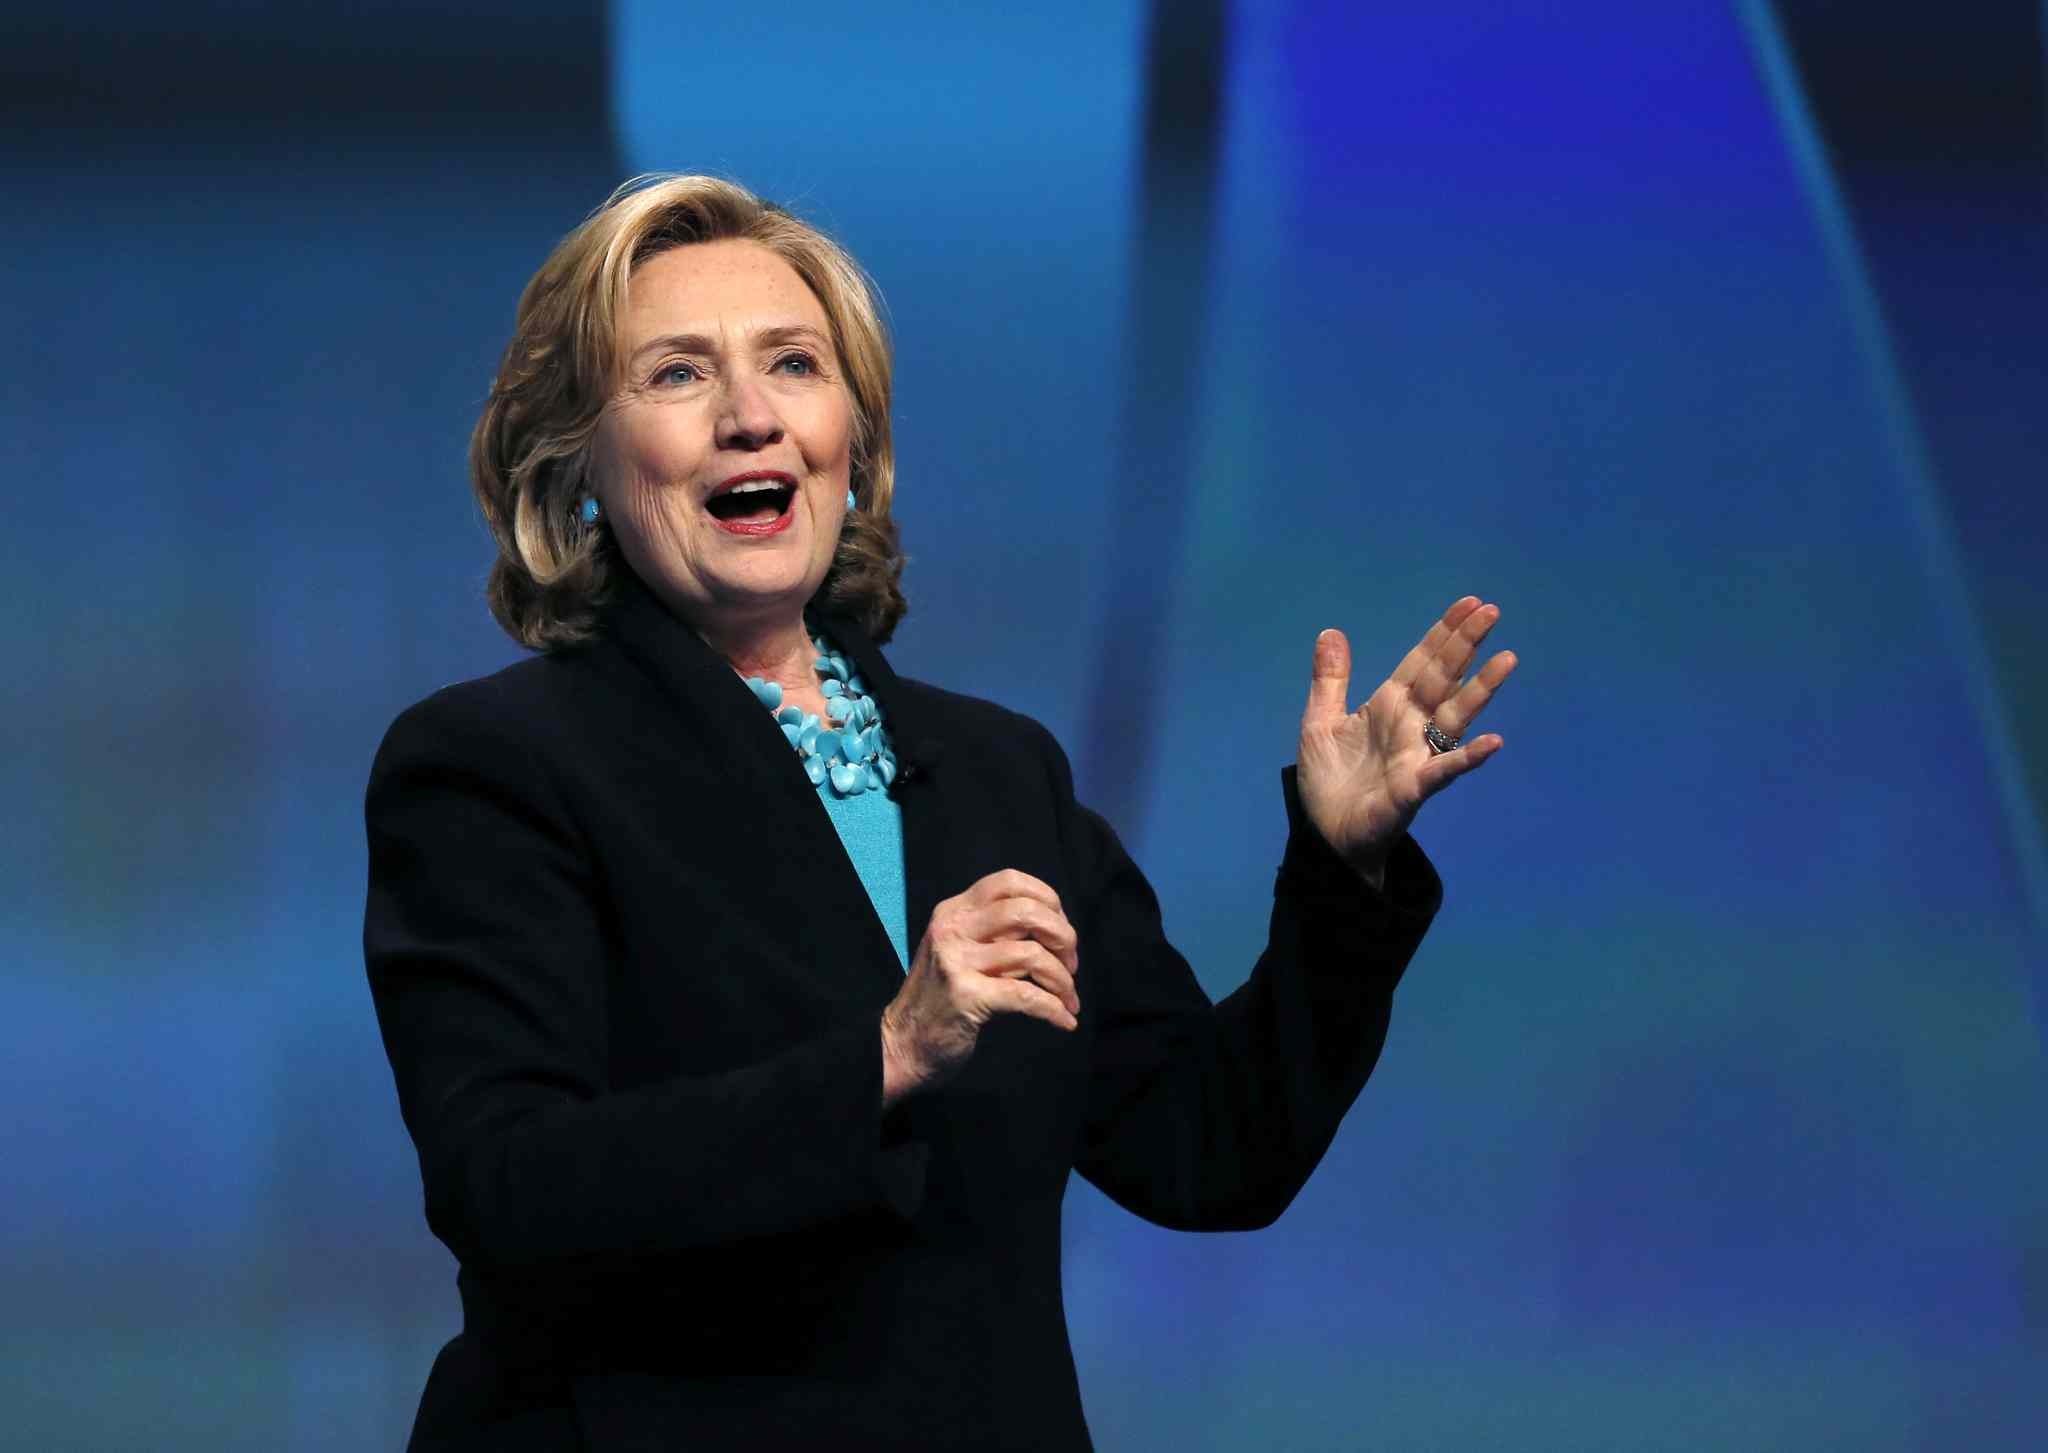 Hillary Clinton's luncheon speech this afternoon will be streamed online.